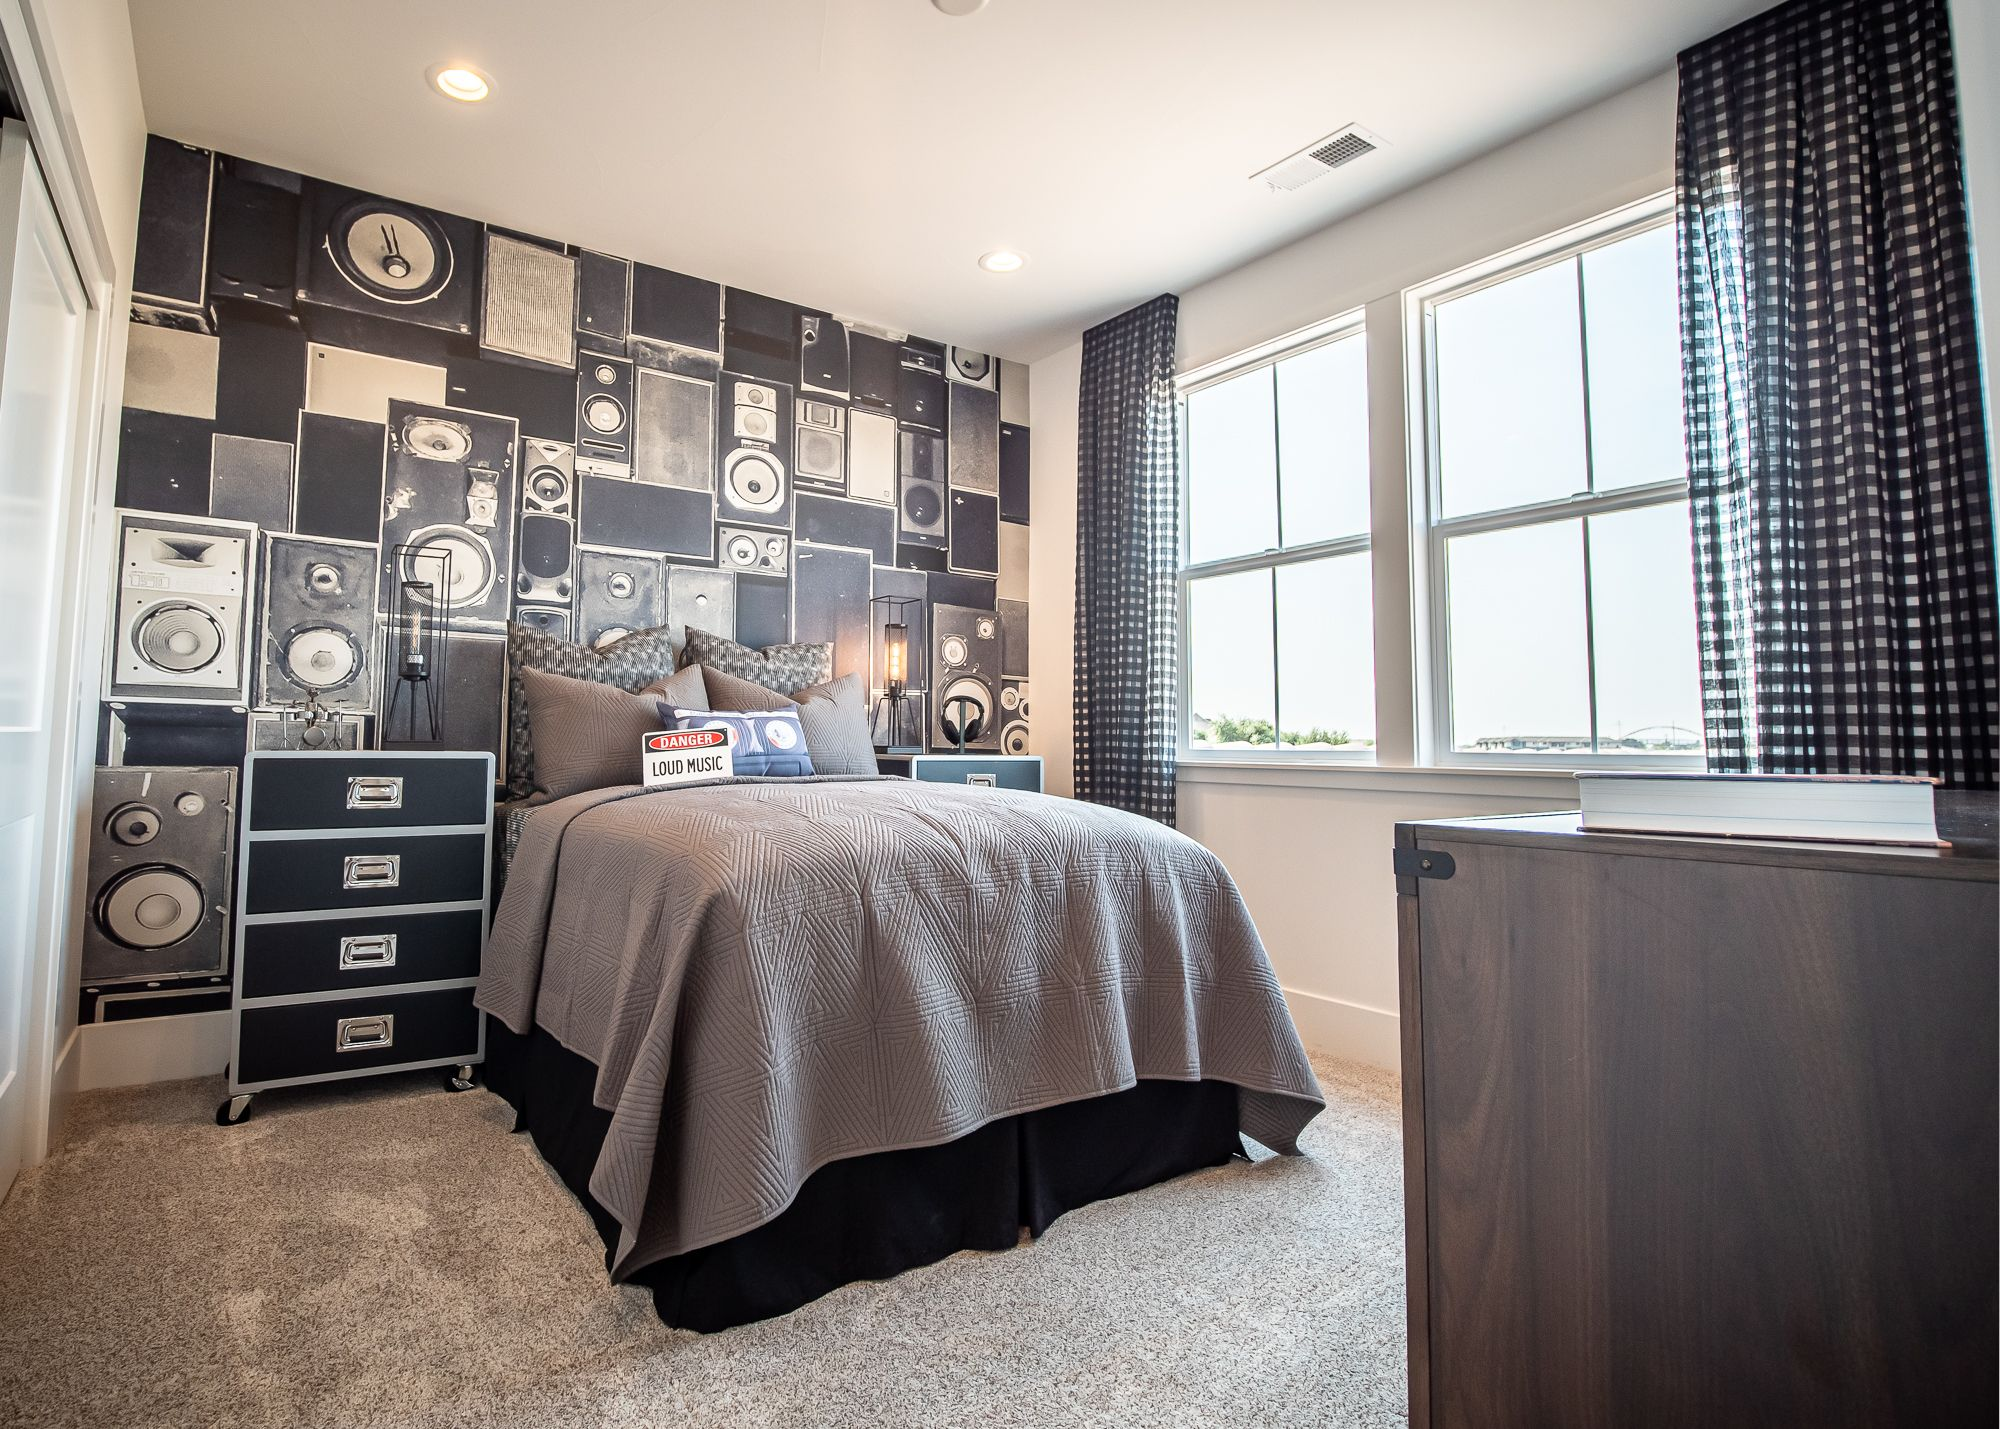 Bedroom featured in the Alley Row Collection Residence 8 By BlackPine Communites in Sacramento, CA